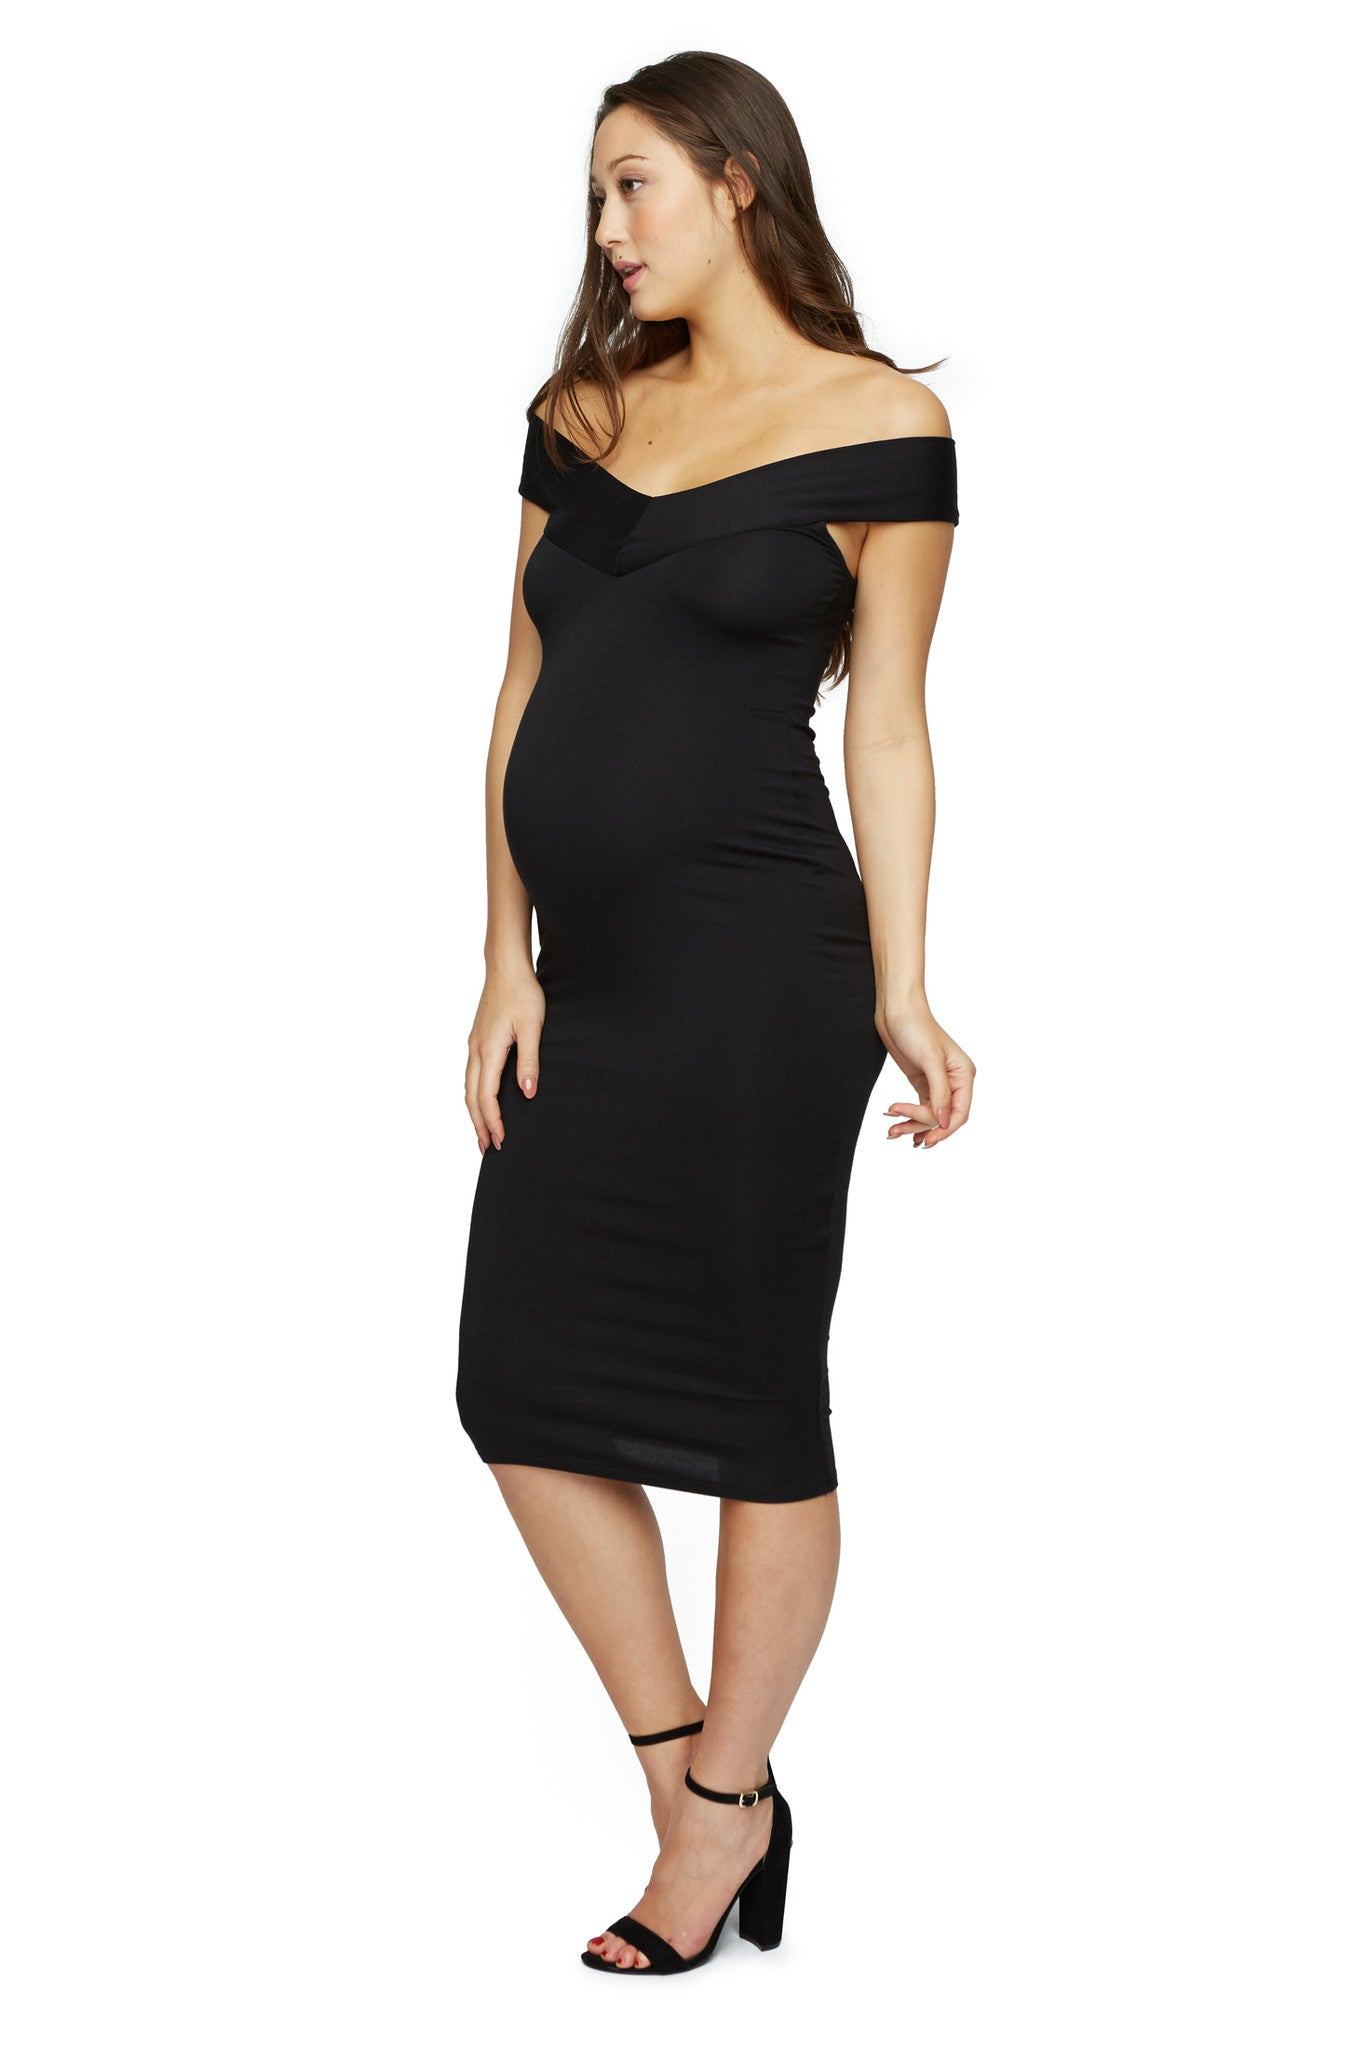 Sammie Dress - Black